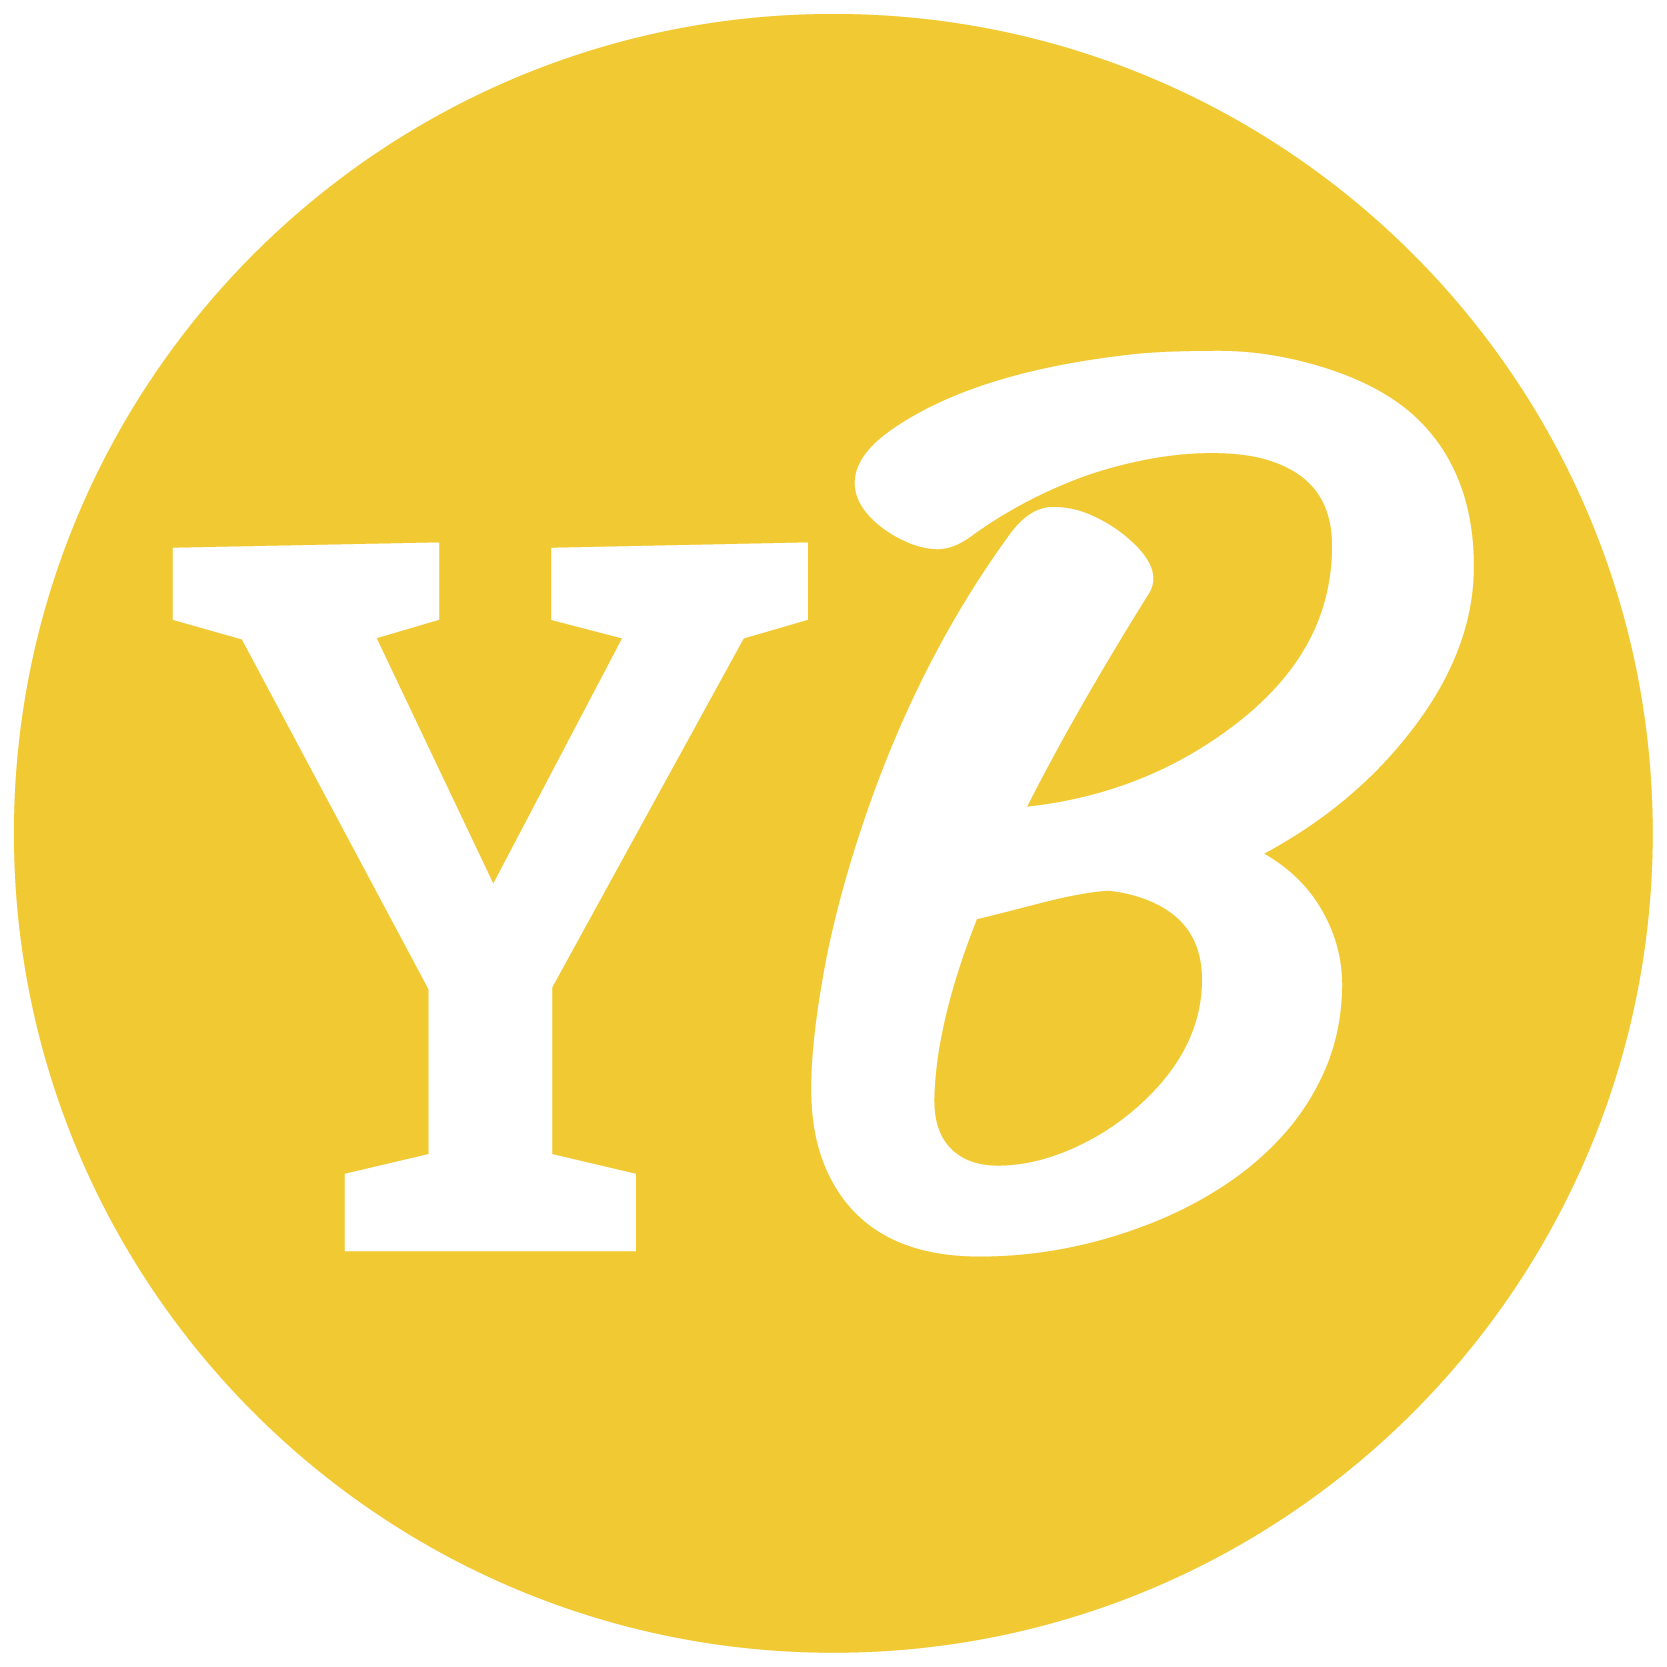 Profile picture of The YorkBuzz